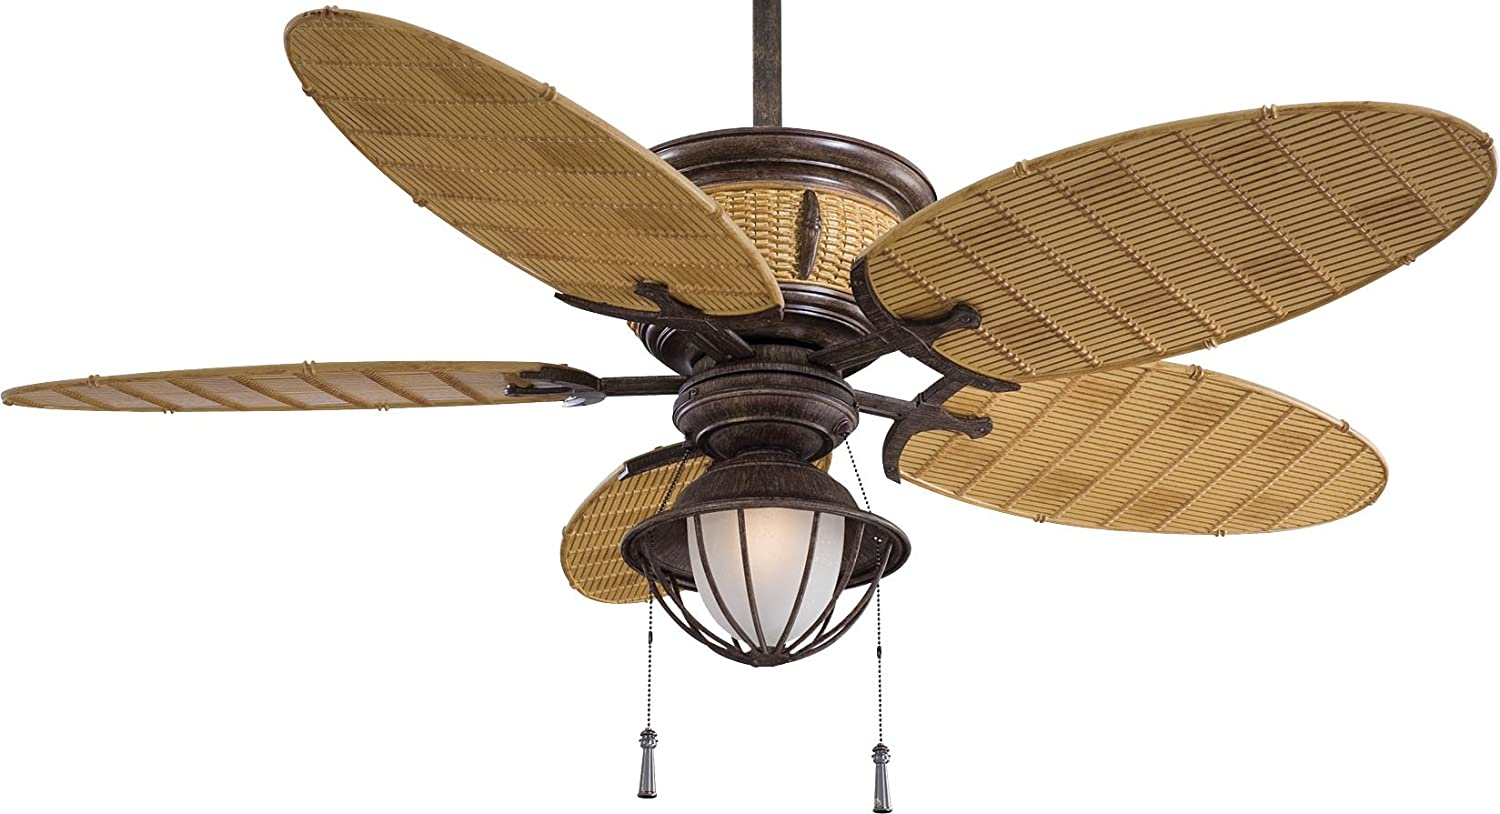 minkaaire f580vrbb shangrila vintage rust 52 inch outdoor ceiling fan with light amazoncom - Minka Aire Fans